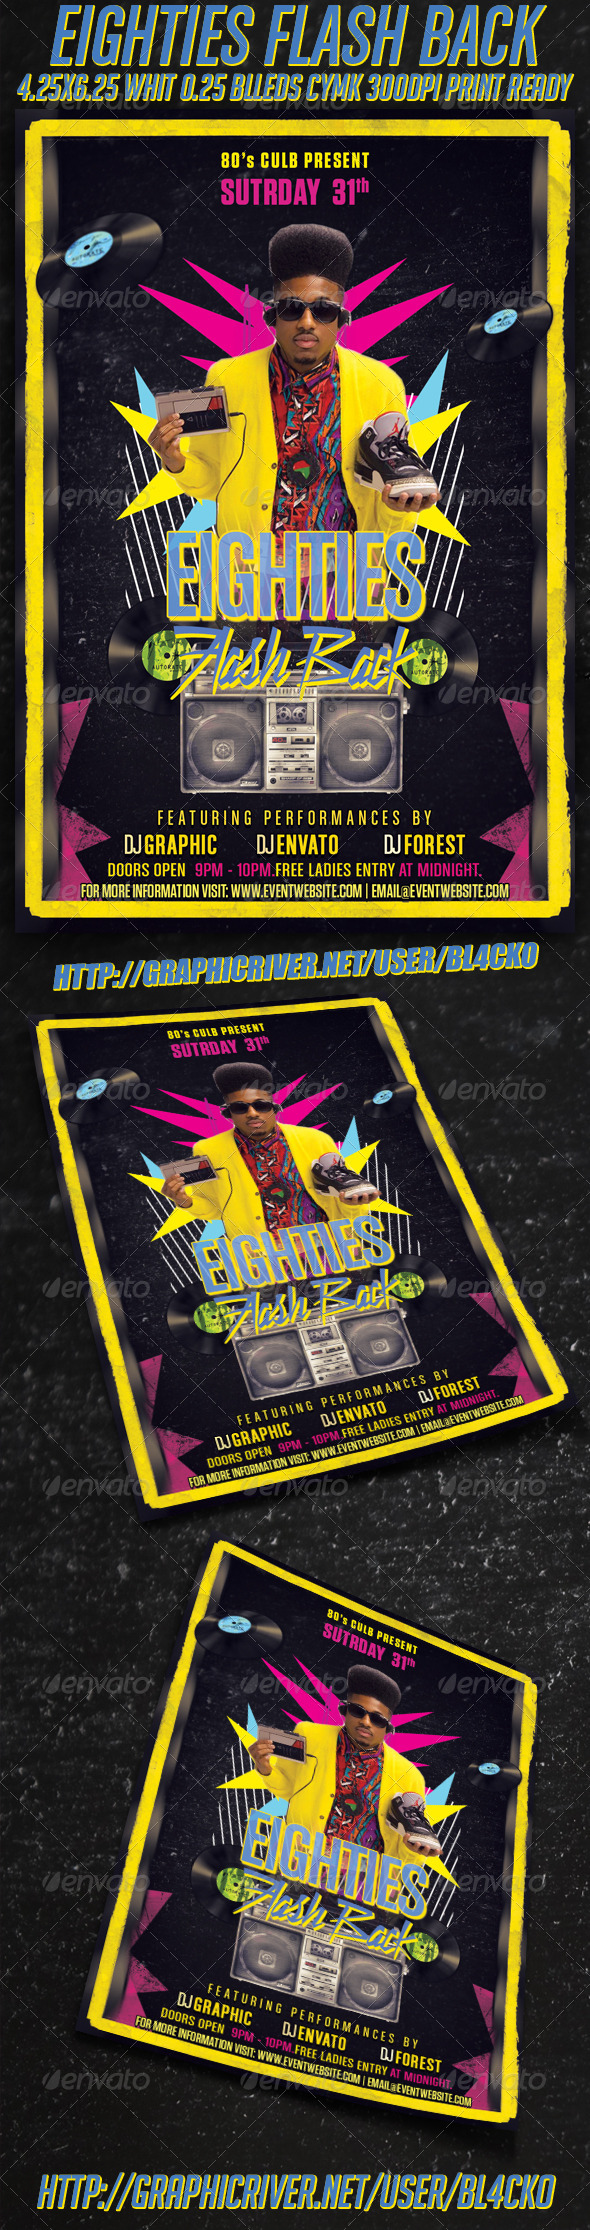 Eighties Flash Back Flyer - Clubs & Parties Events